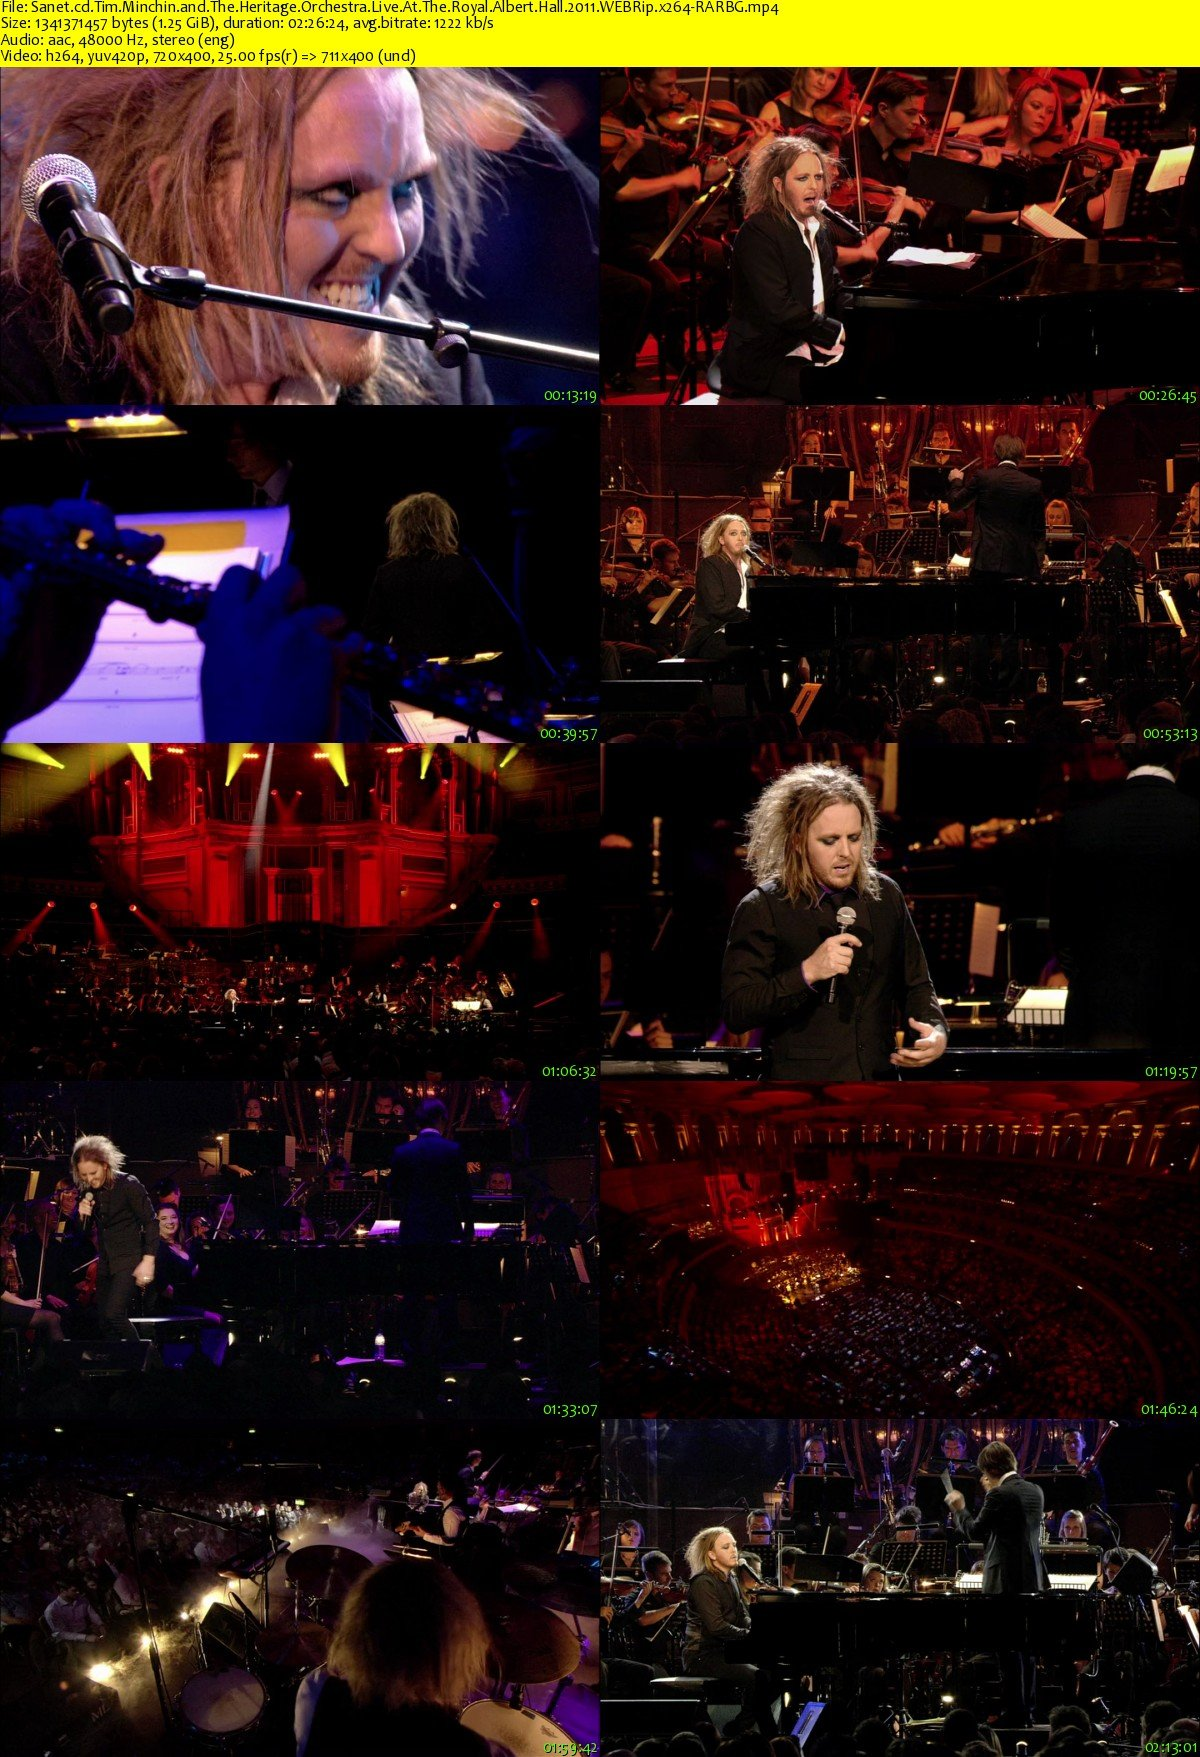 Download tim minchin and the heritage orchestra live at for Heritage orchestra